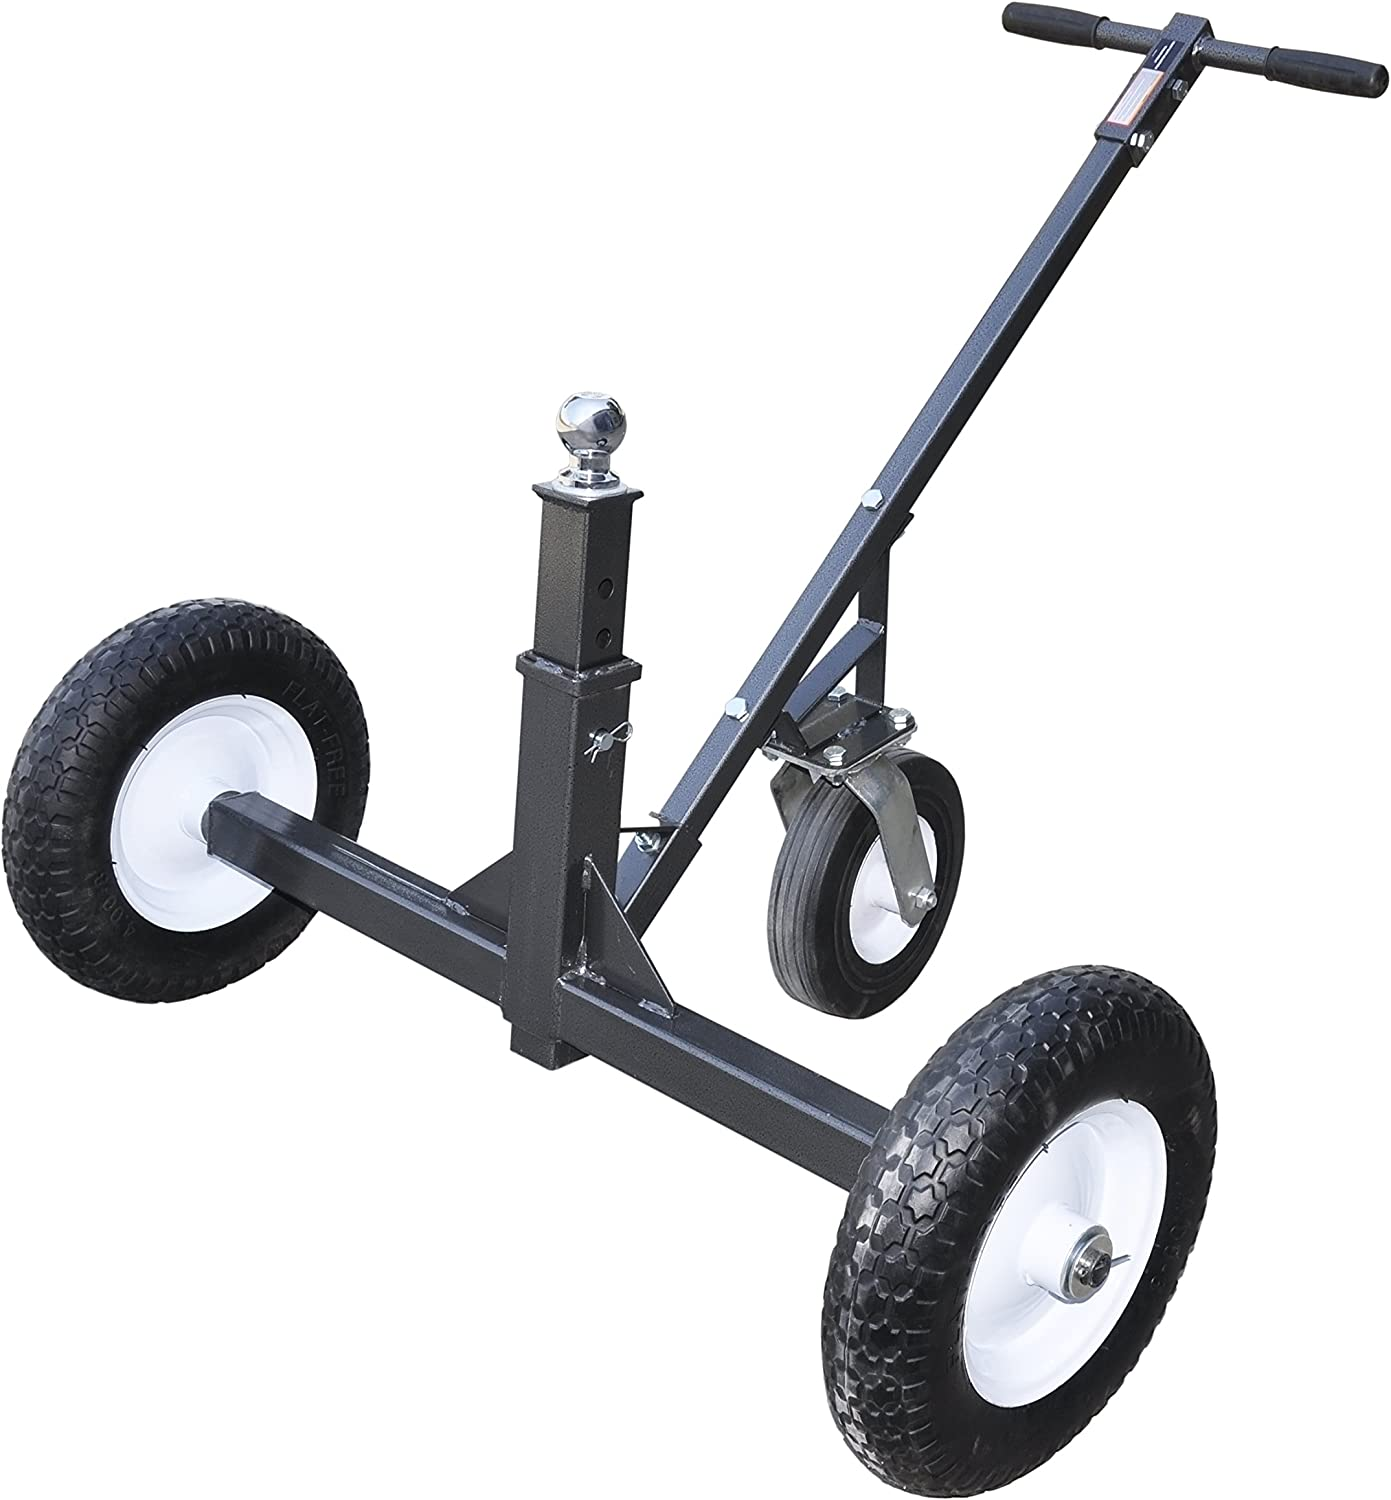 Tow Tuff Heavy-Duty Trailer Dolly